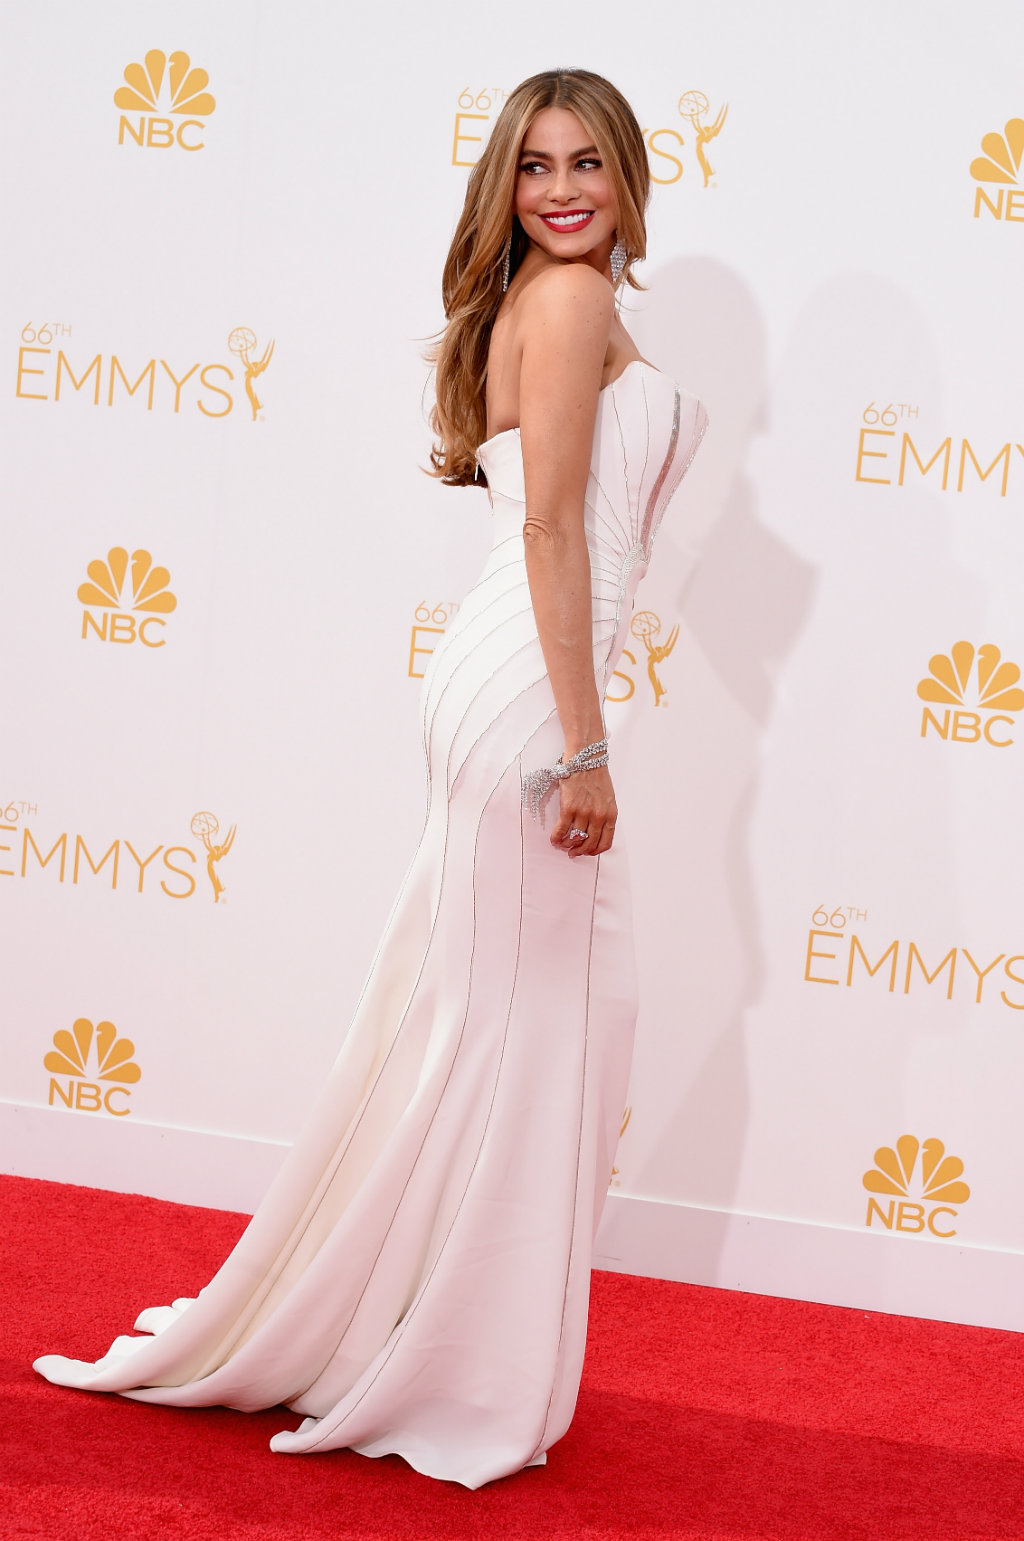 Sofia Vergara, from Modern Family. (Getty Images)